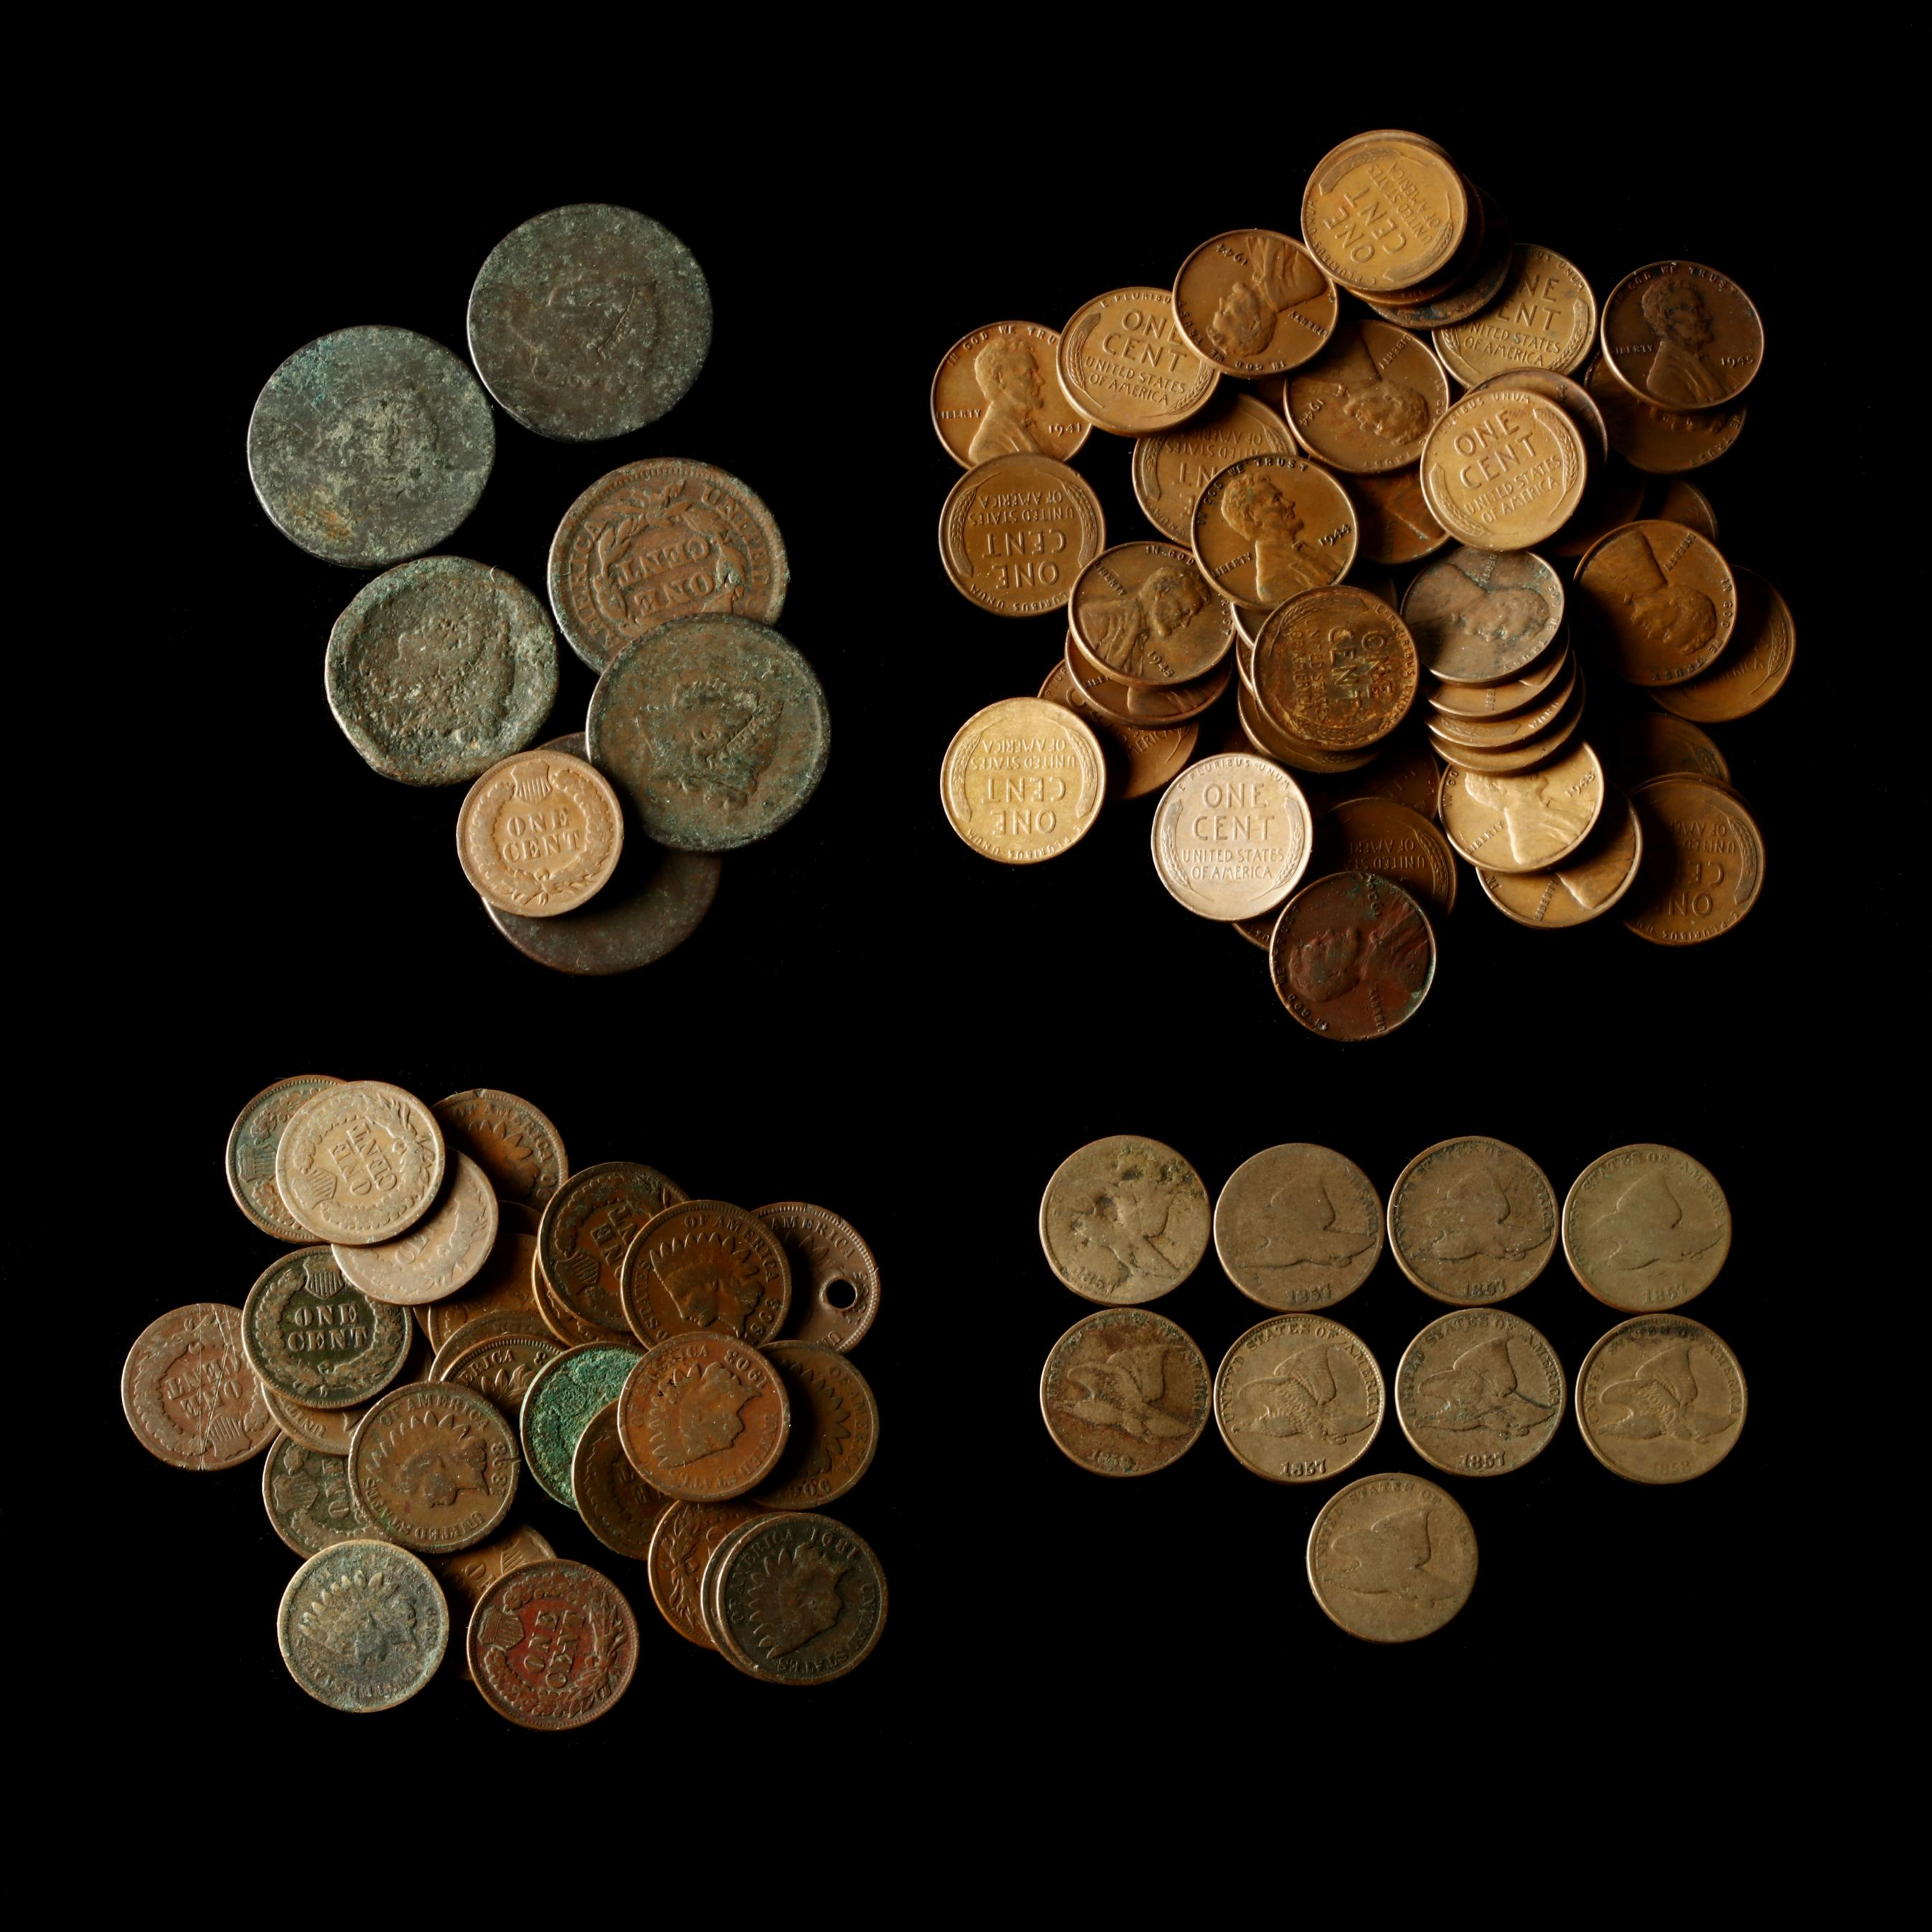 a-small-hoard-of-circulated-obsolete-u-s-cents